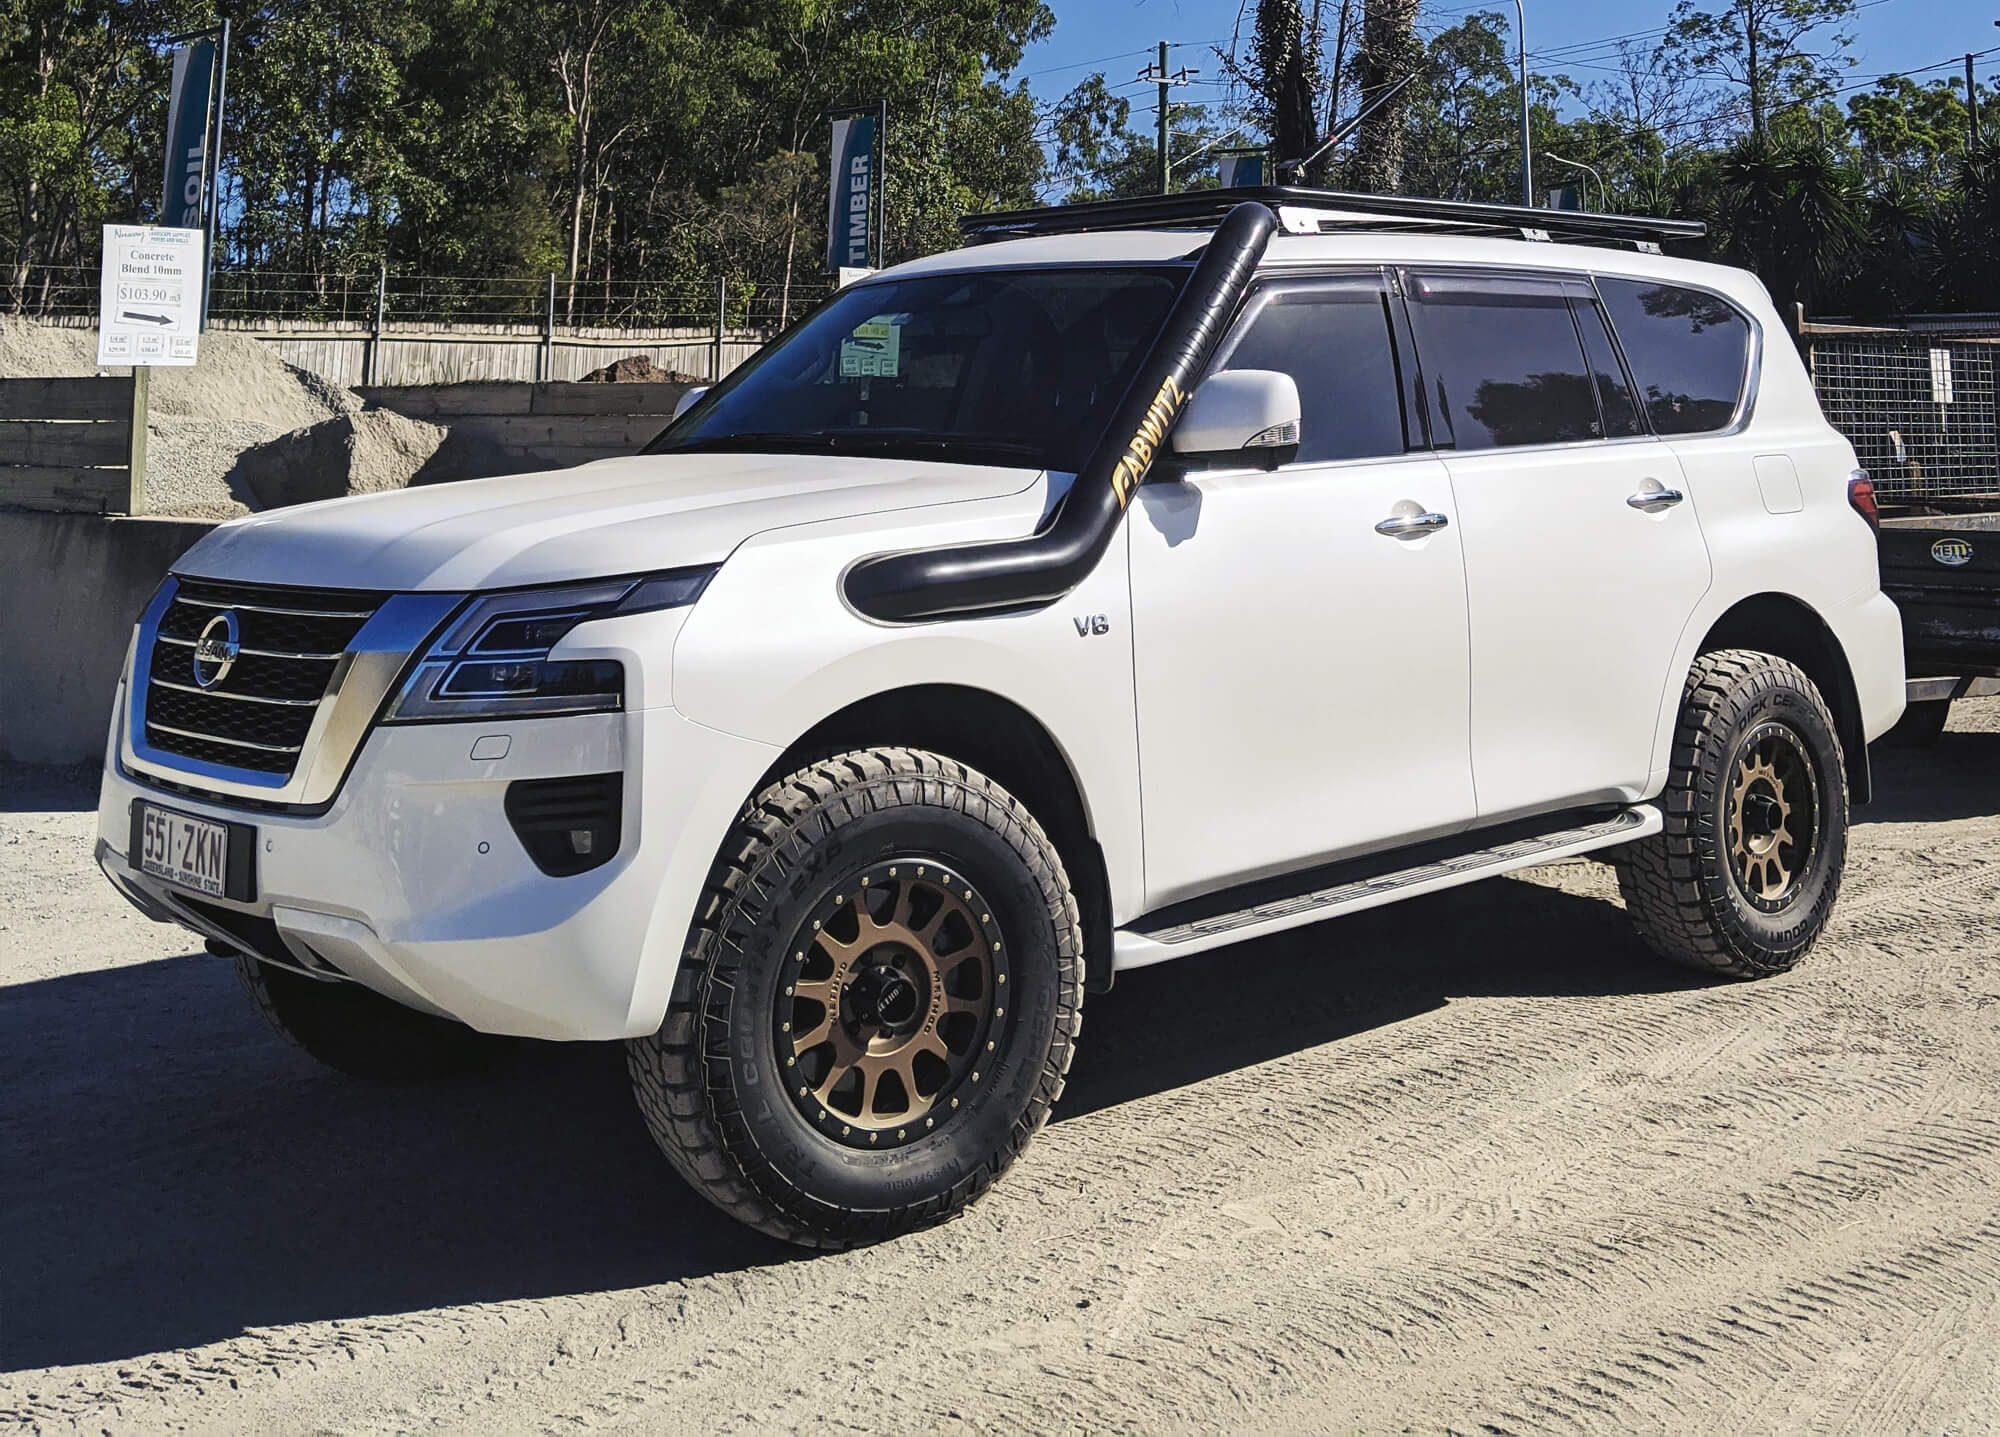 "2"" Lifted Nissan Patrol Y62 on Method rims and 34"" A/T off-road tires"